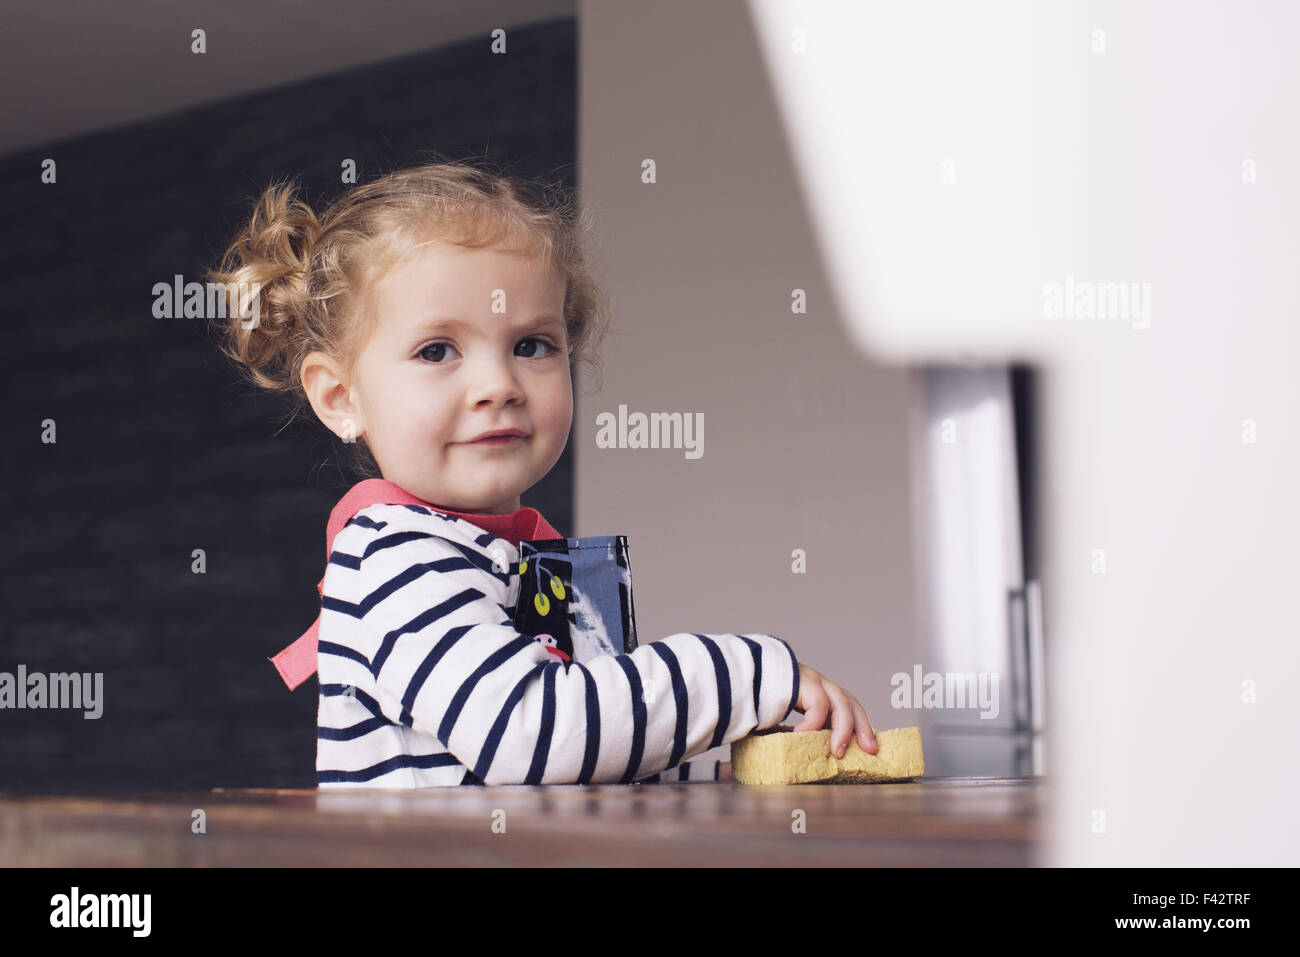 Little girl helping with housework, portrait - Stock Image